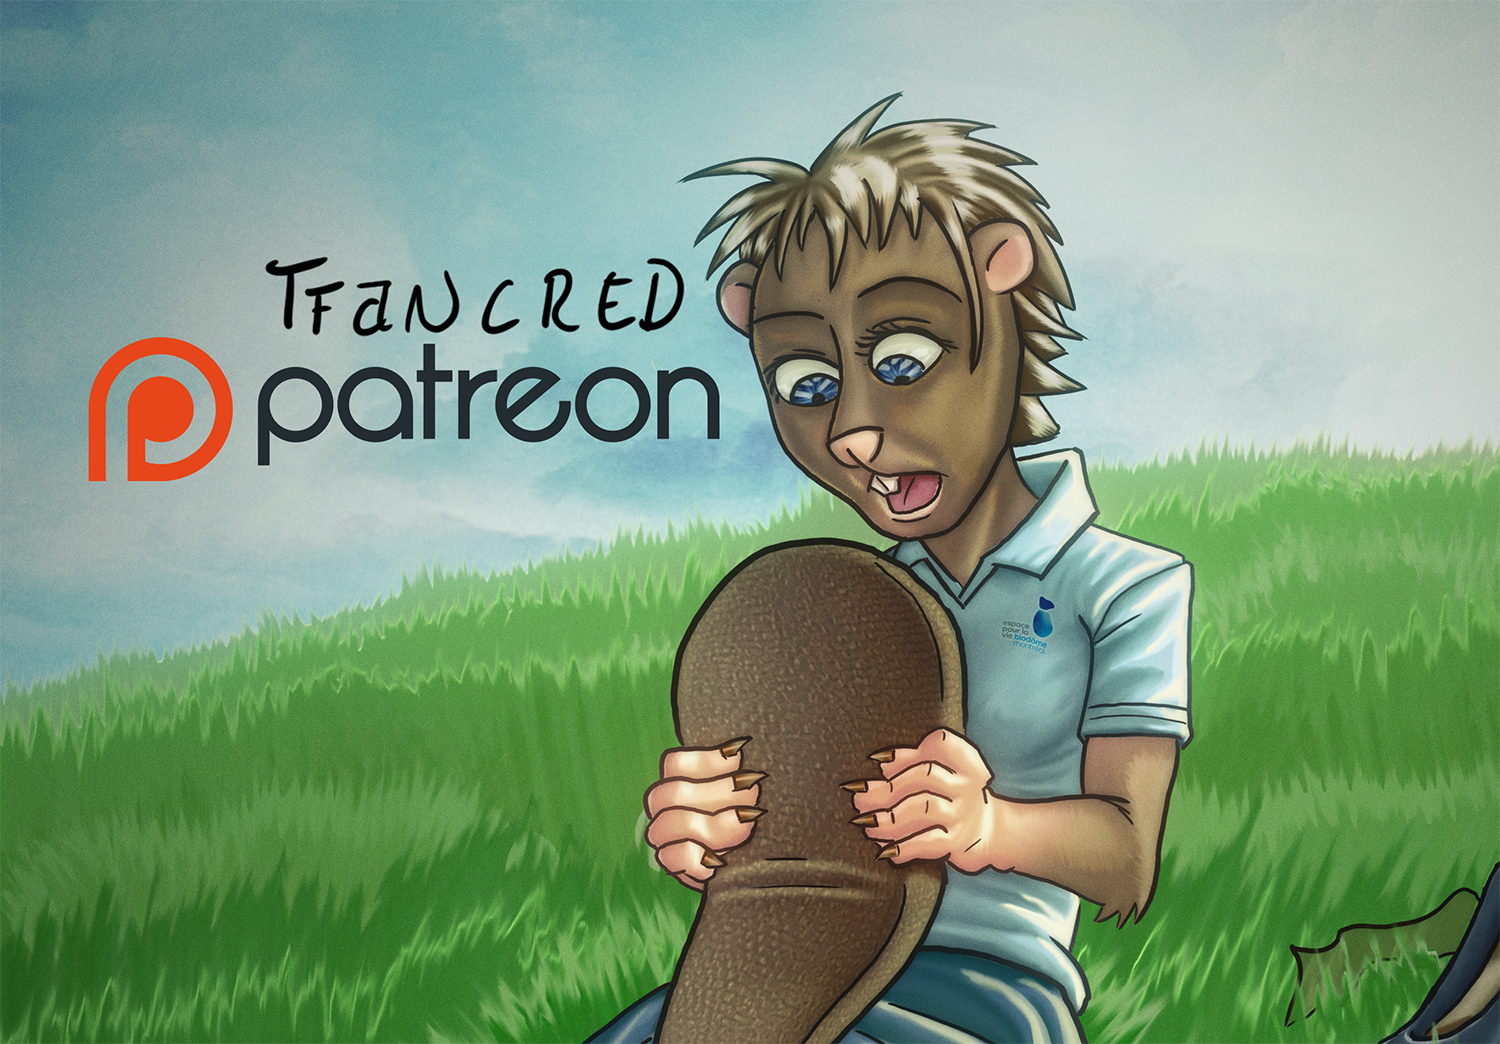 B for Beaver - Patreon Preview by tfancred